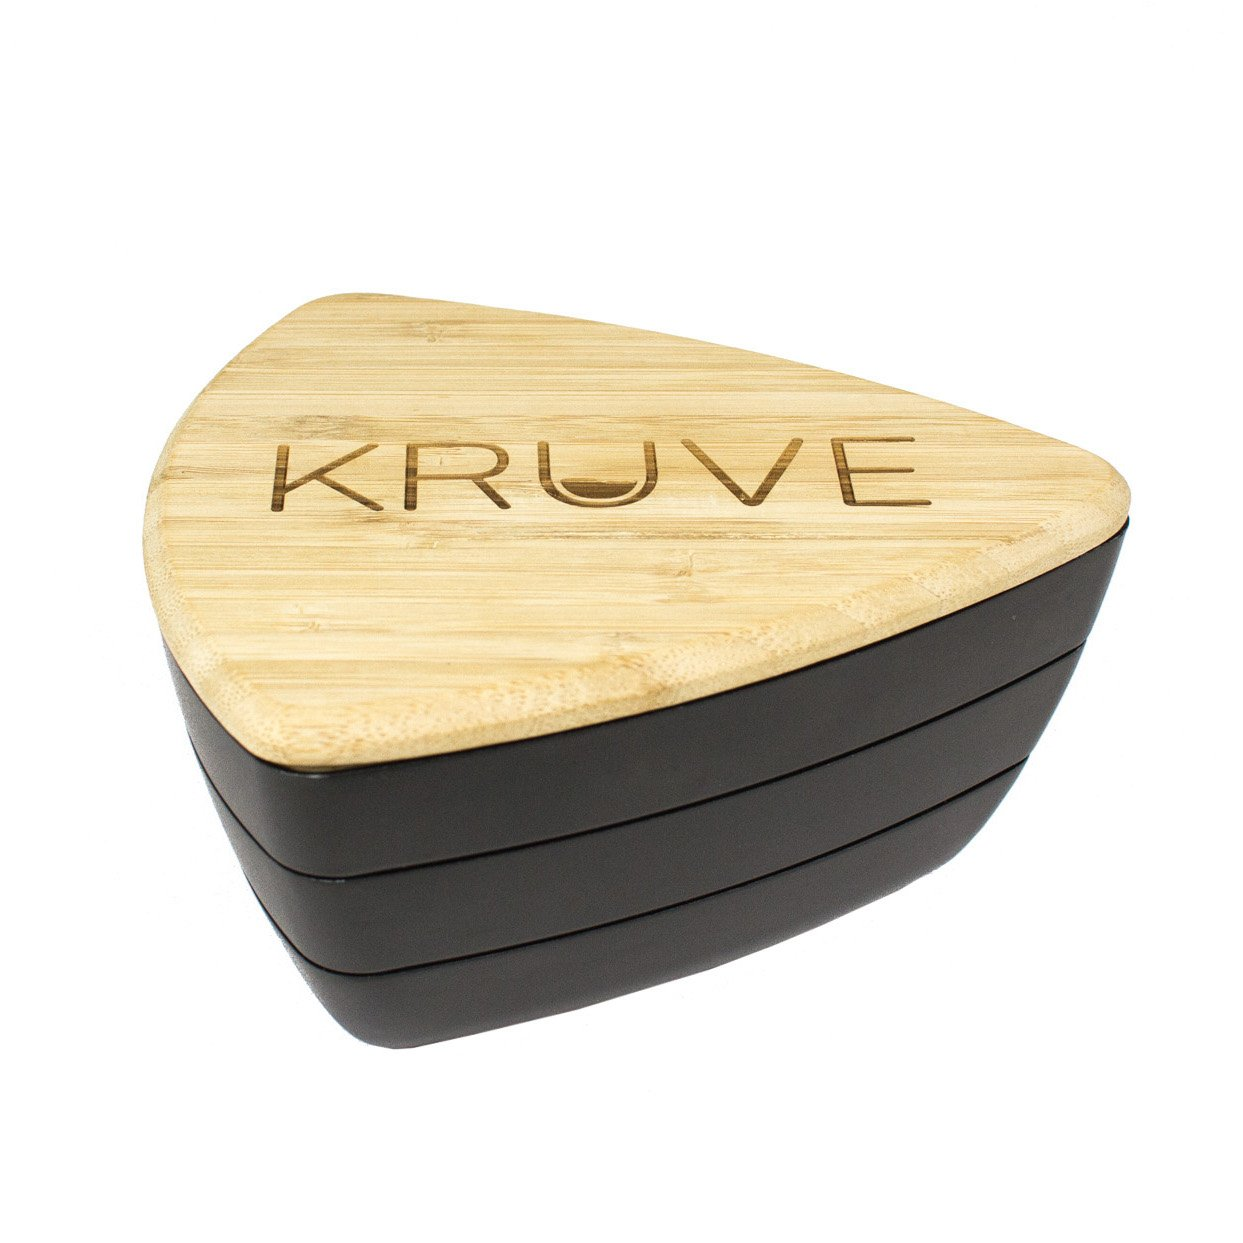 KRUVE Sifter Six Helps Accurately Measure, Calibrate, Refine Coffee Grinds, Great for Cafes, Baristas, Or Home Brewers, 6 Sieves, Black